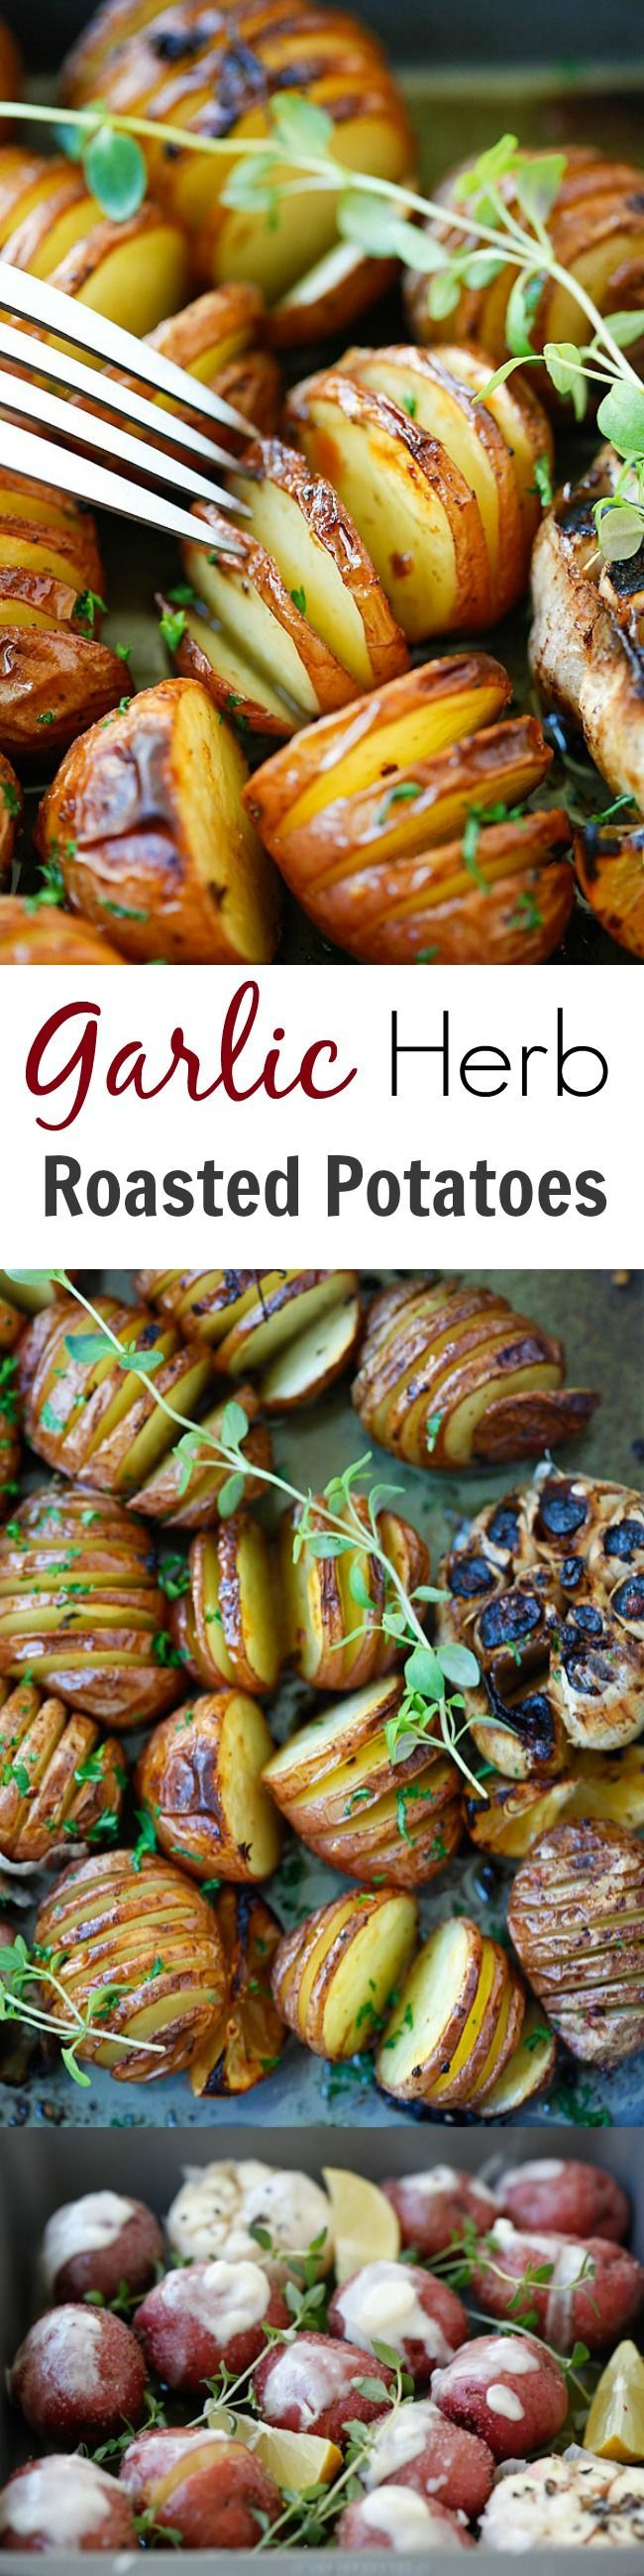 Garlic Herb Roasted Potatoes - baked garlic potatoes with herb, olive oil butter and lemon. The best homemade roasted potatoes recipe ever | rasamalaysia.com